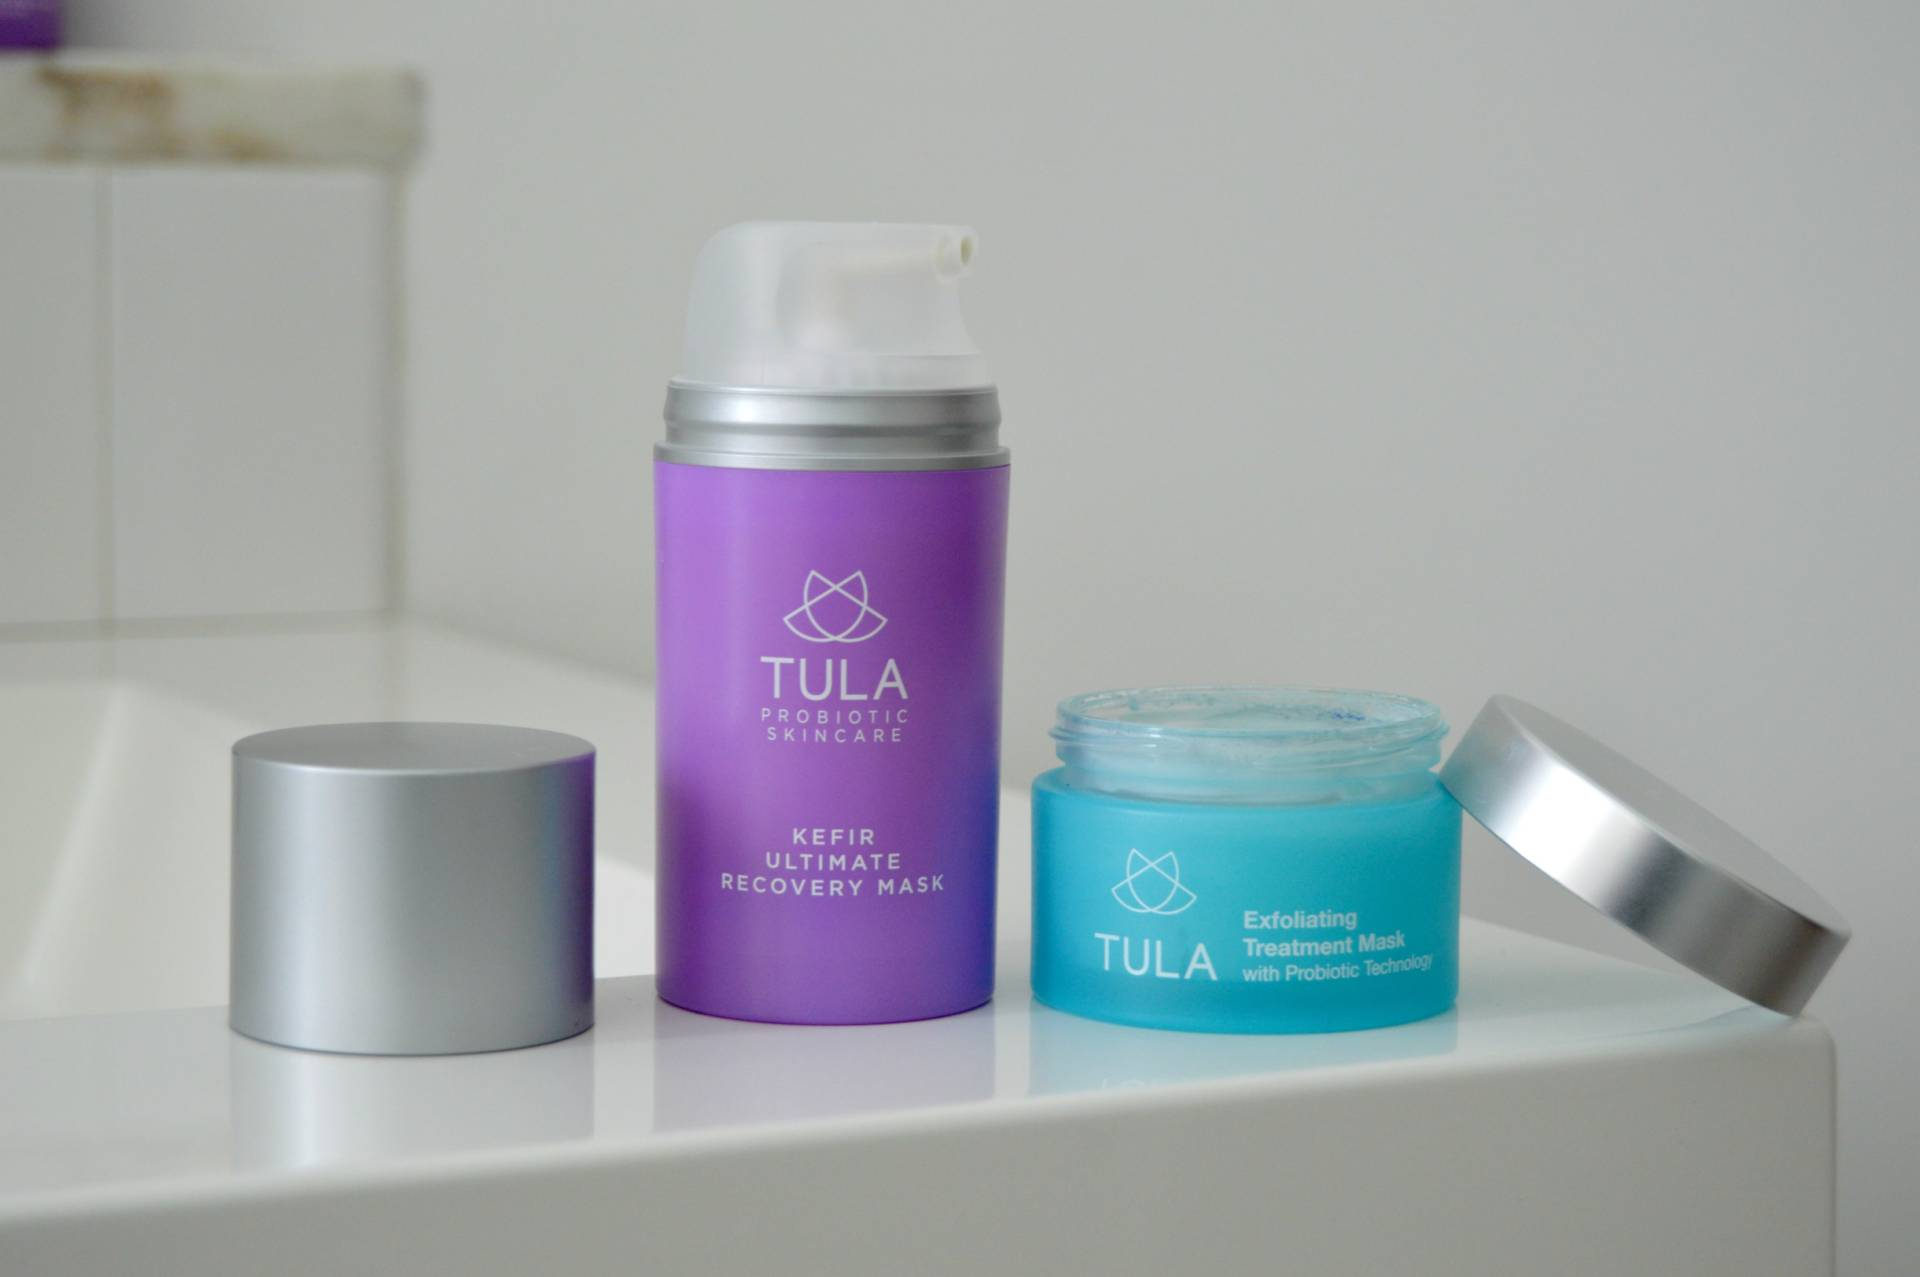 Tula Kefir Ultimate Recovery Mask Exclusive 20 Off Promo Code Black Exfoliate Recover